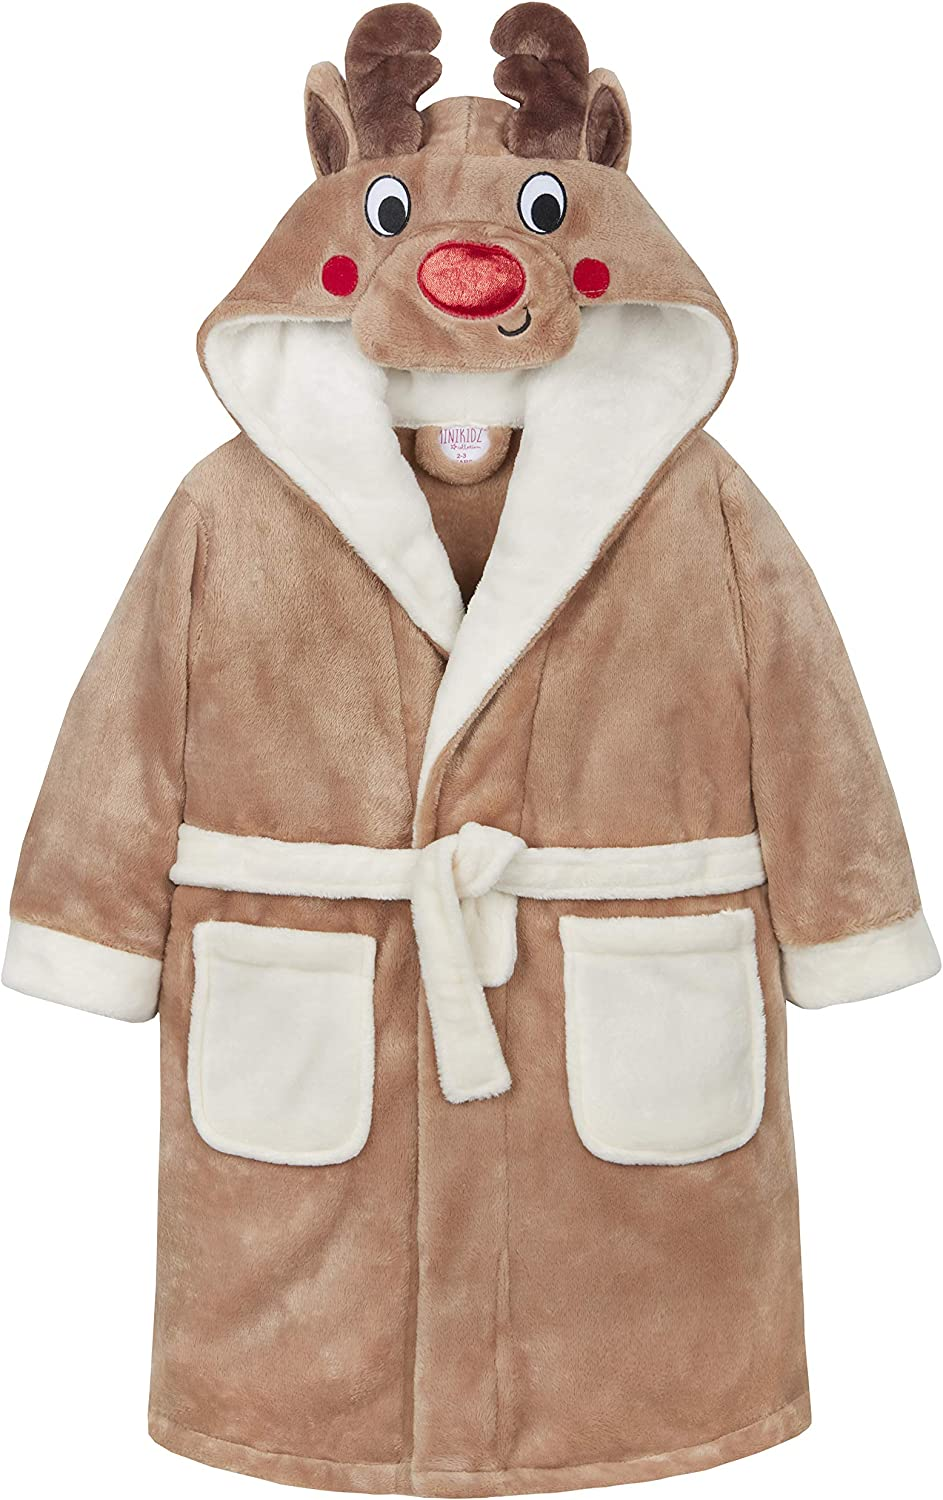 Metzuyan Boys and Girls Rudolph Reindeer Novelty Hooded Plush Dressing Gown Robe